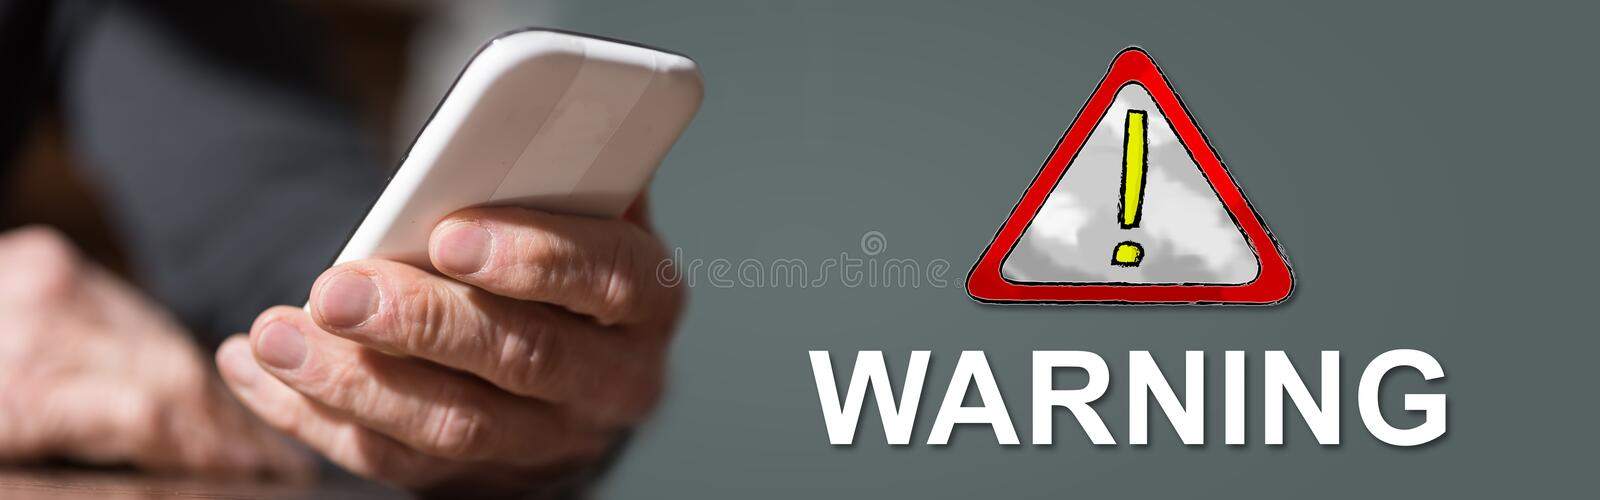 Concept of warning. Hand holding mobil phone with warning concept on background stock photography